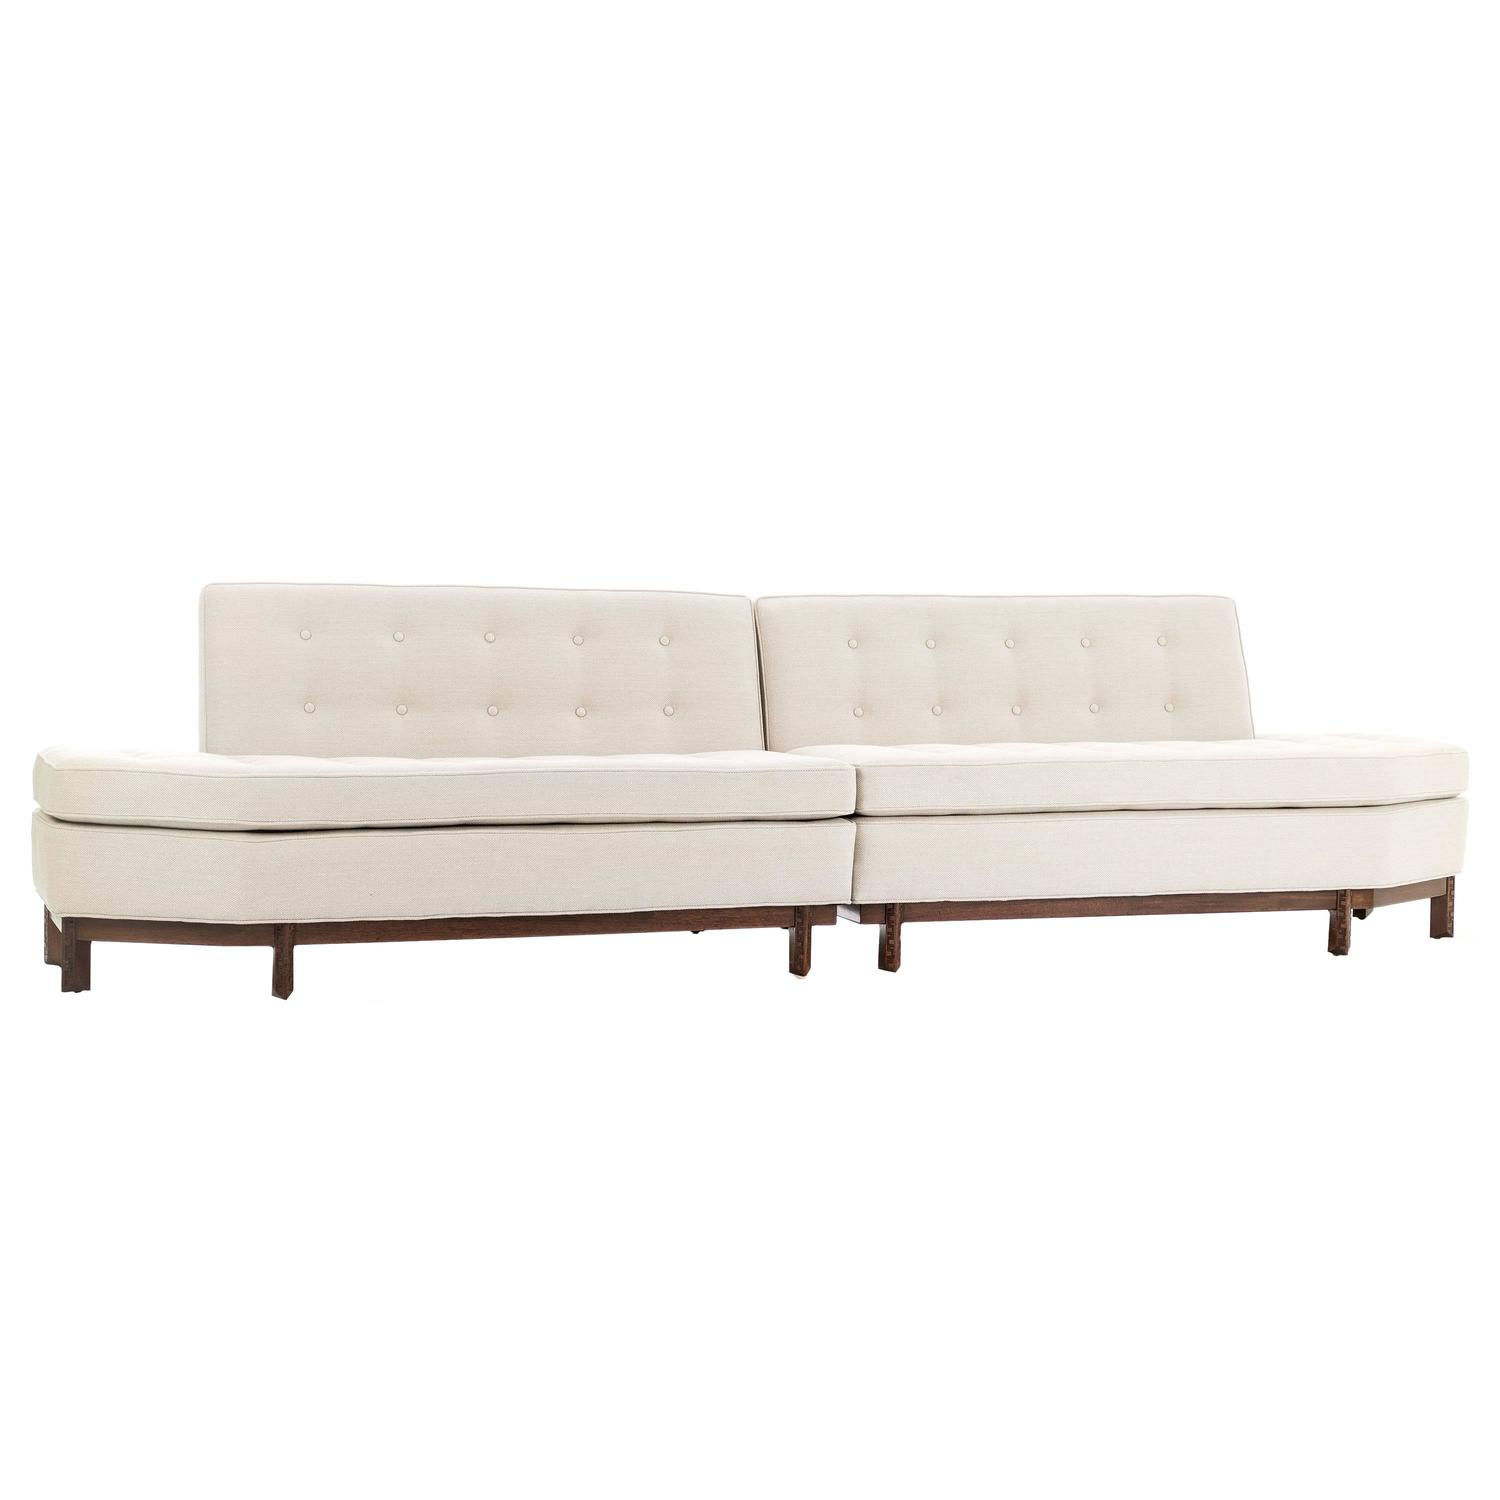 Frank Lloyd Wright Sectional Sofa For Sale at 1stdibs